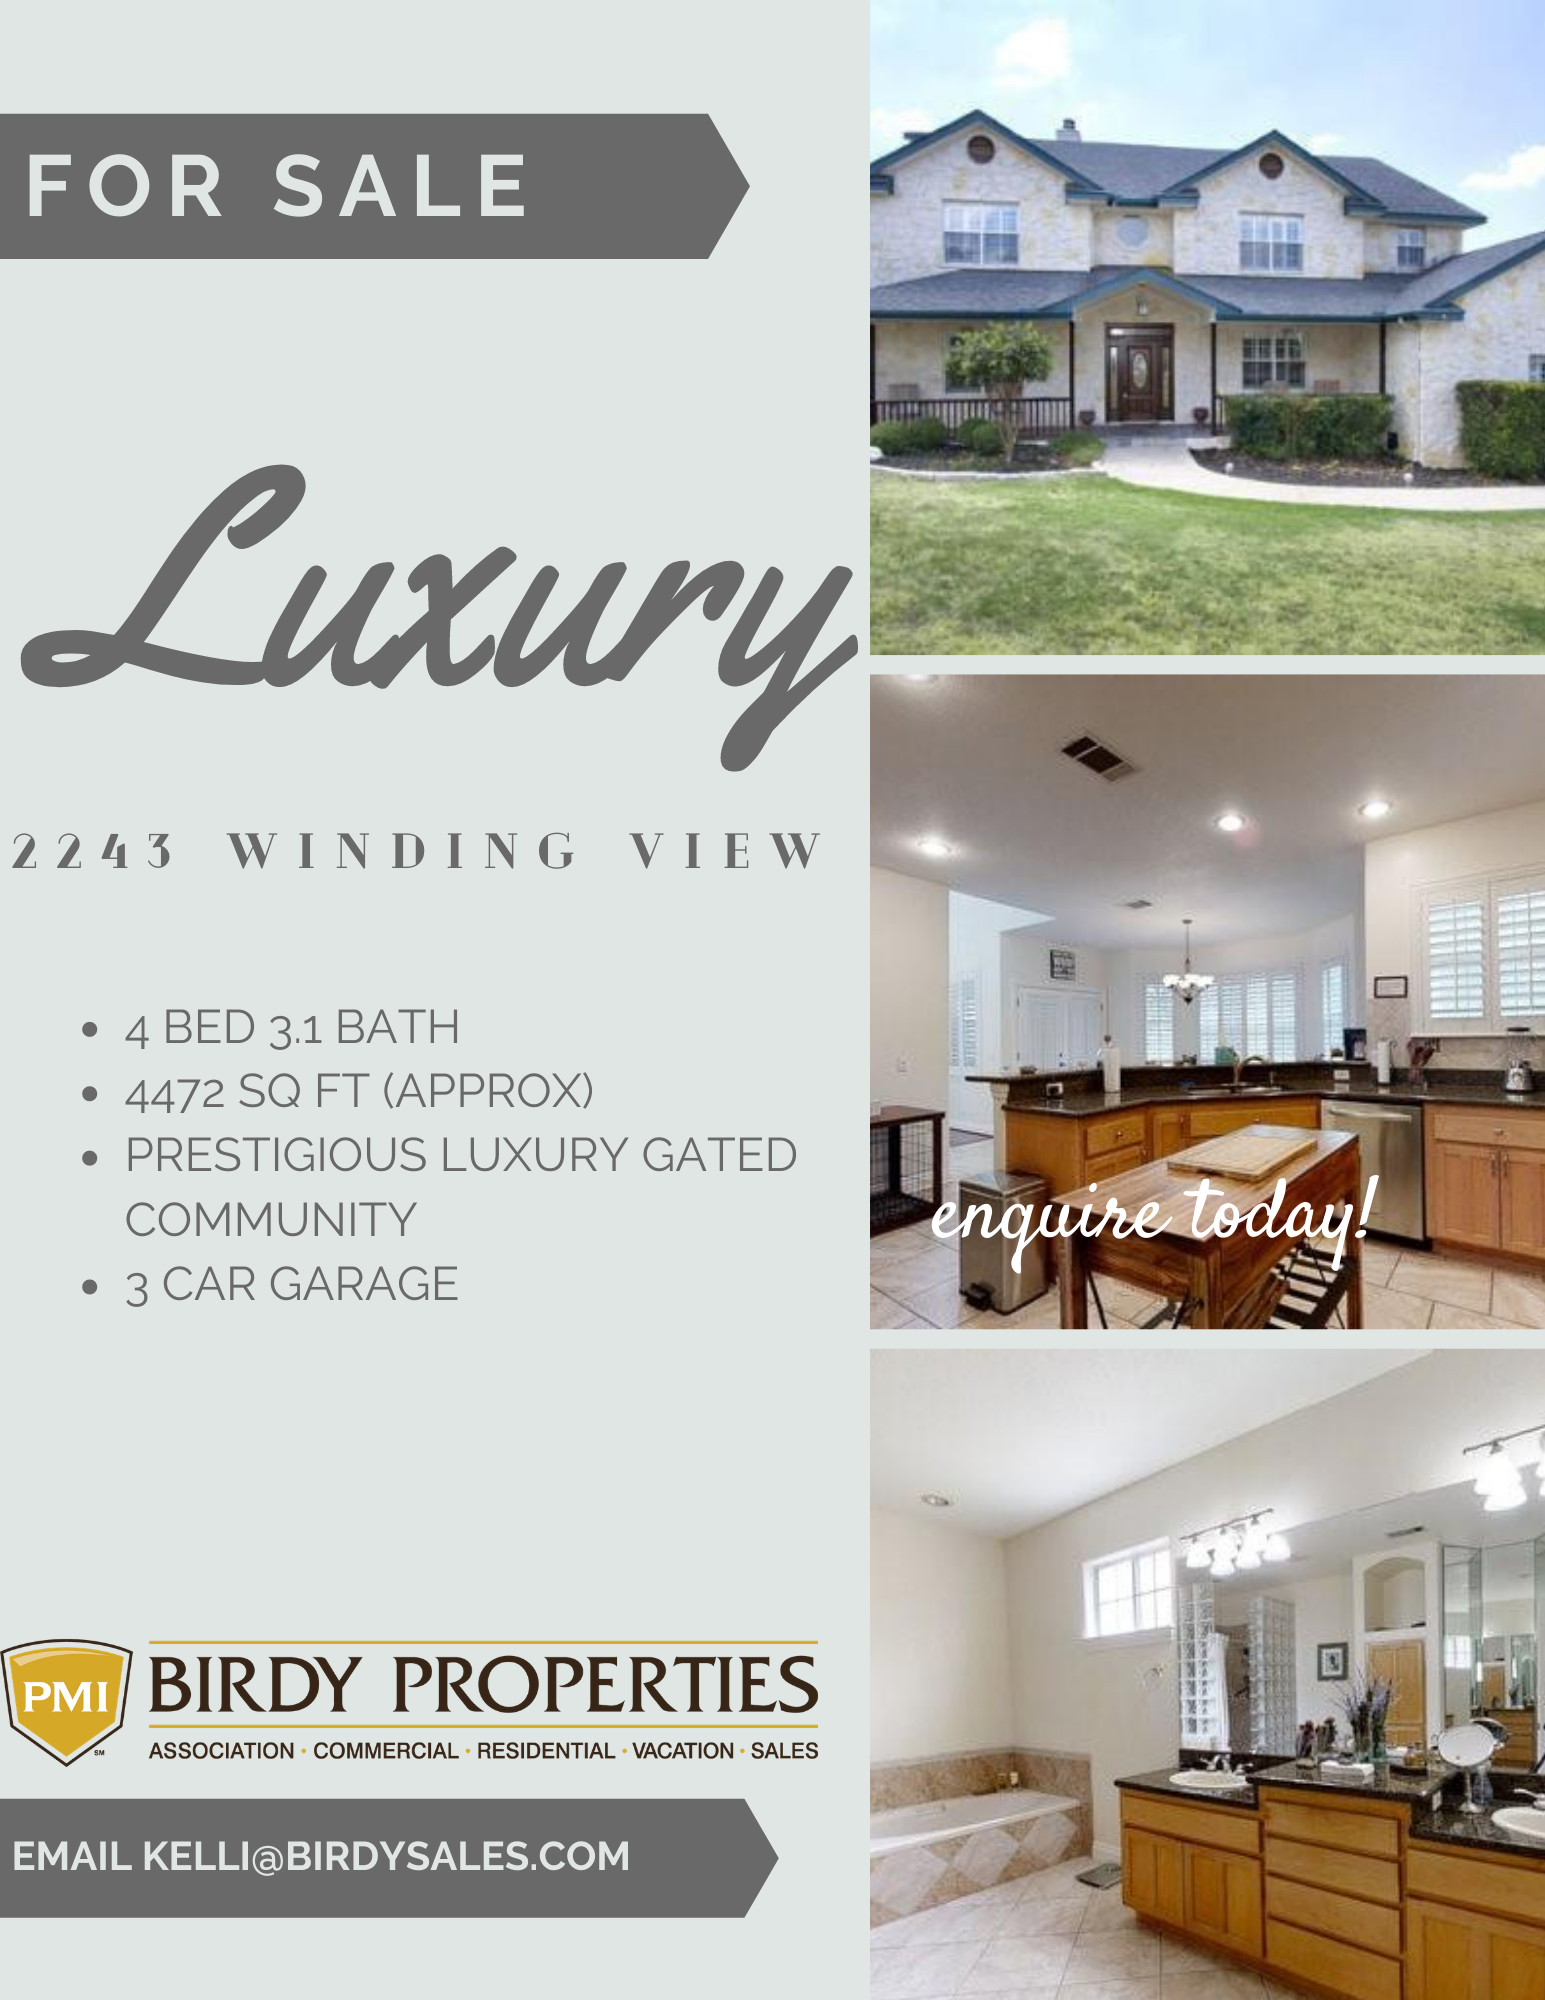 For Sale 2243 Winding View